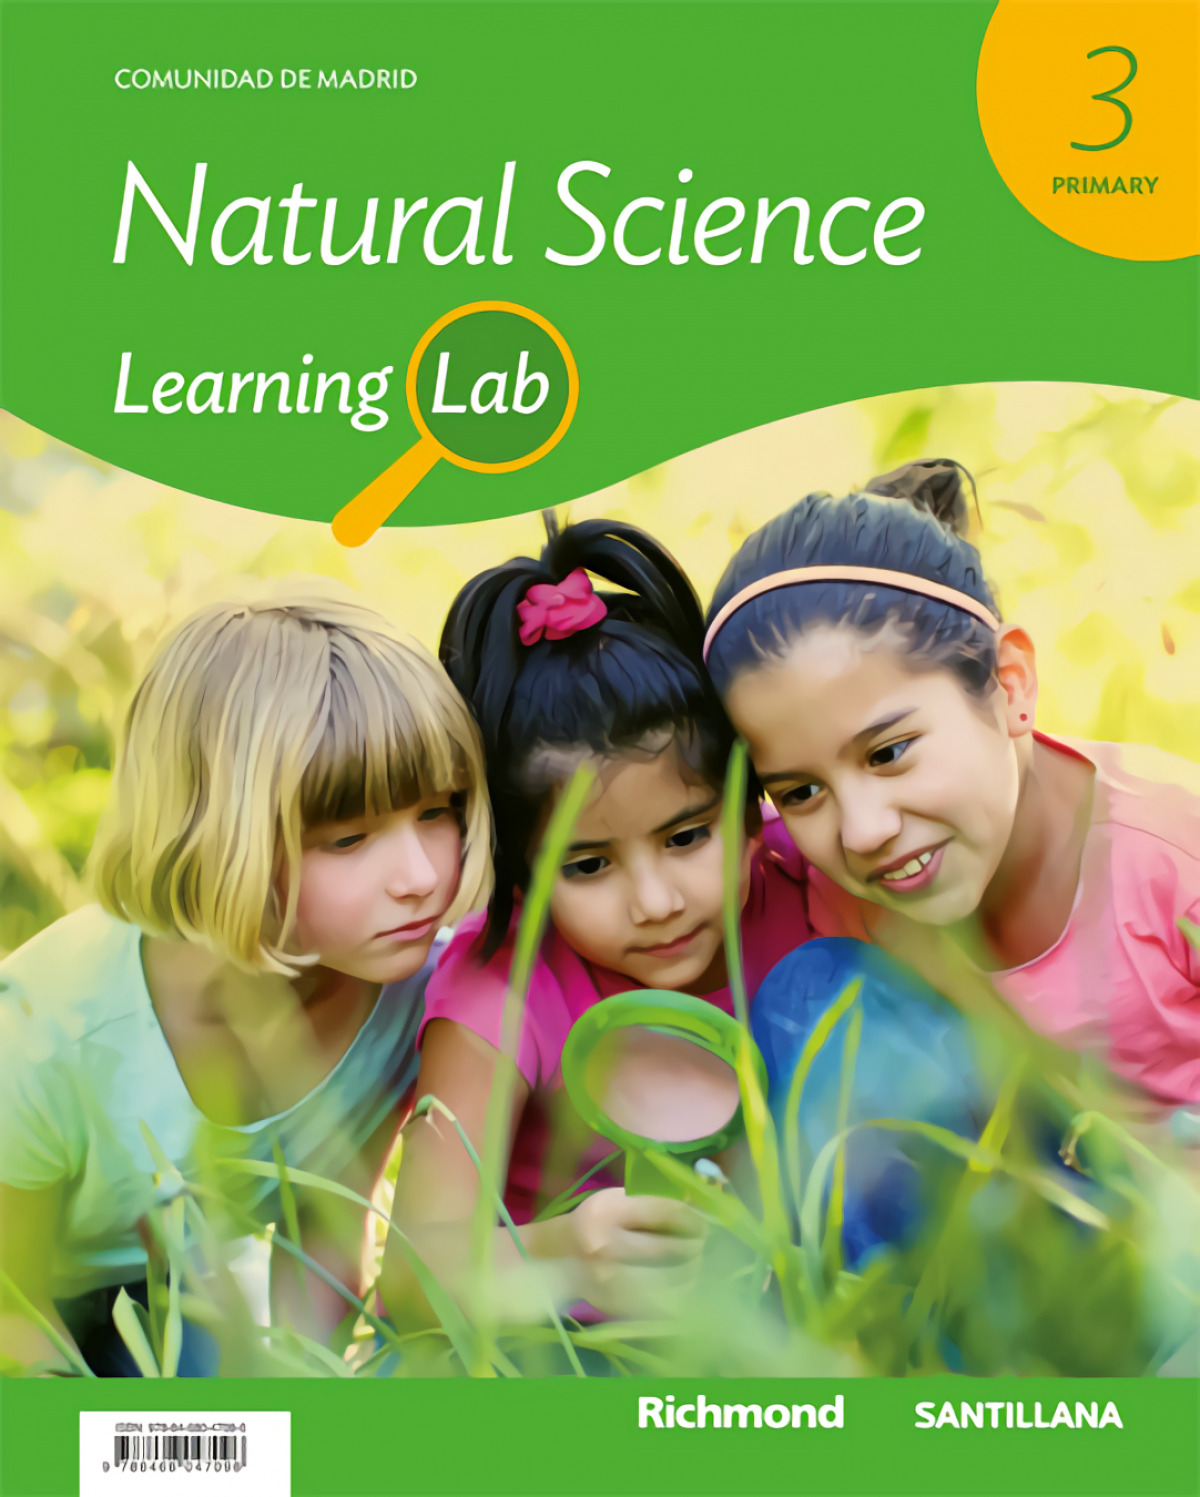 NATURAL SCIENCE 3o.PRIMARIA. LEARNING LAB. MADRID 9788468047096